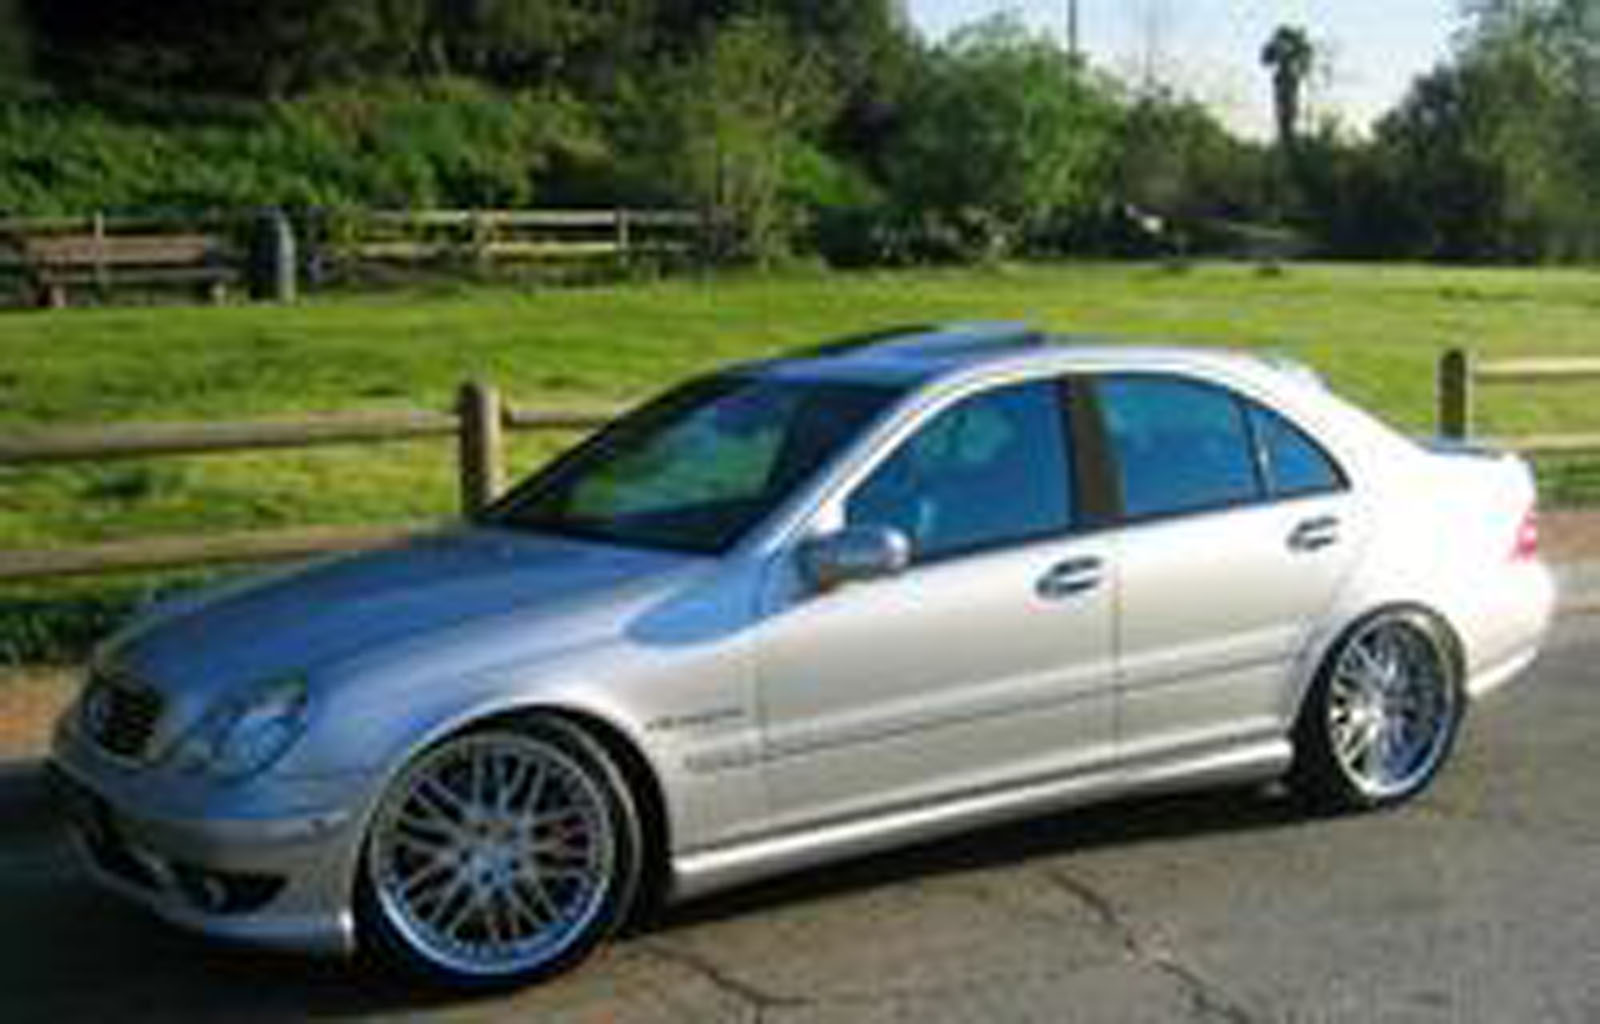 2003 mercedes c32 amg for sale eagle rock california